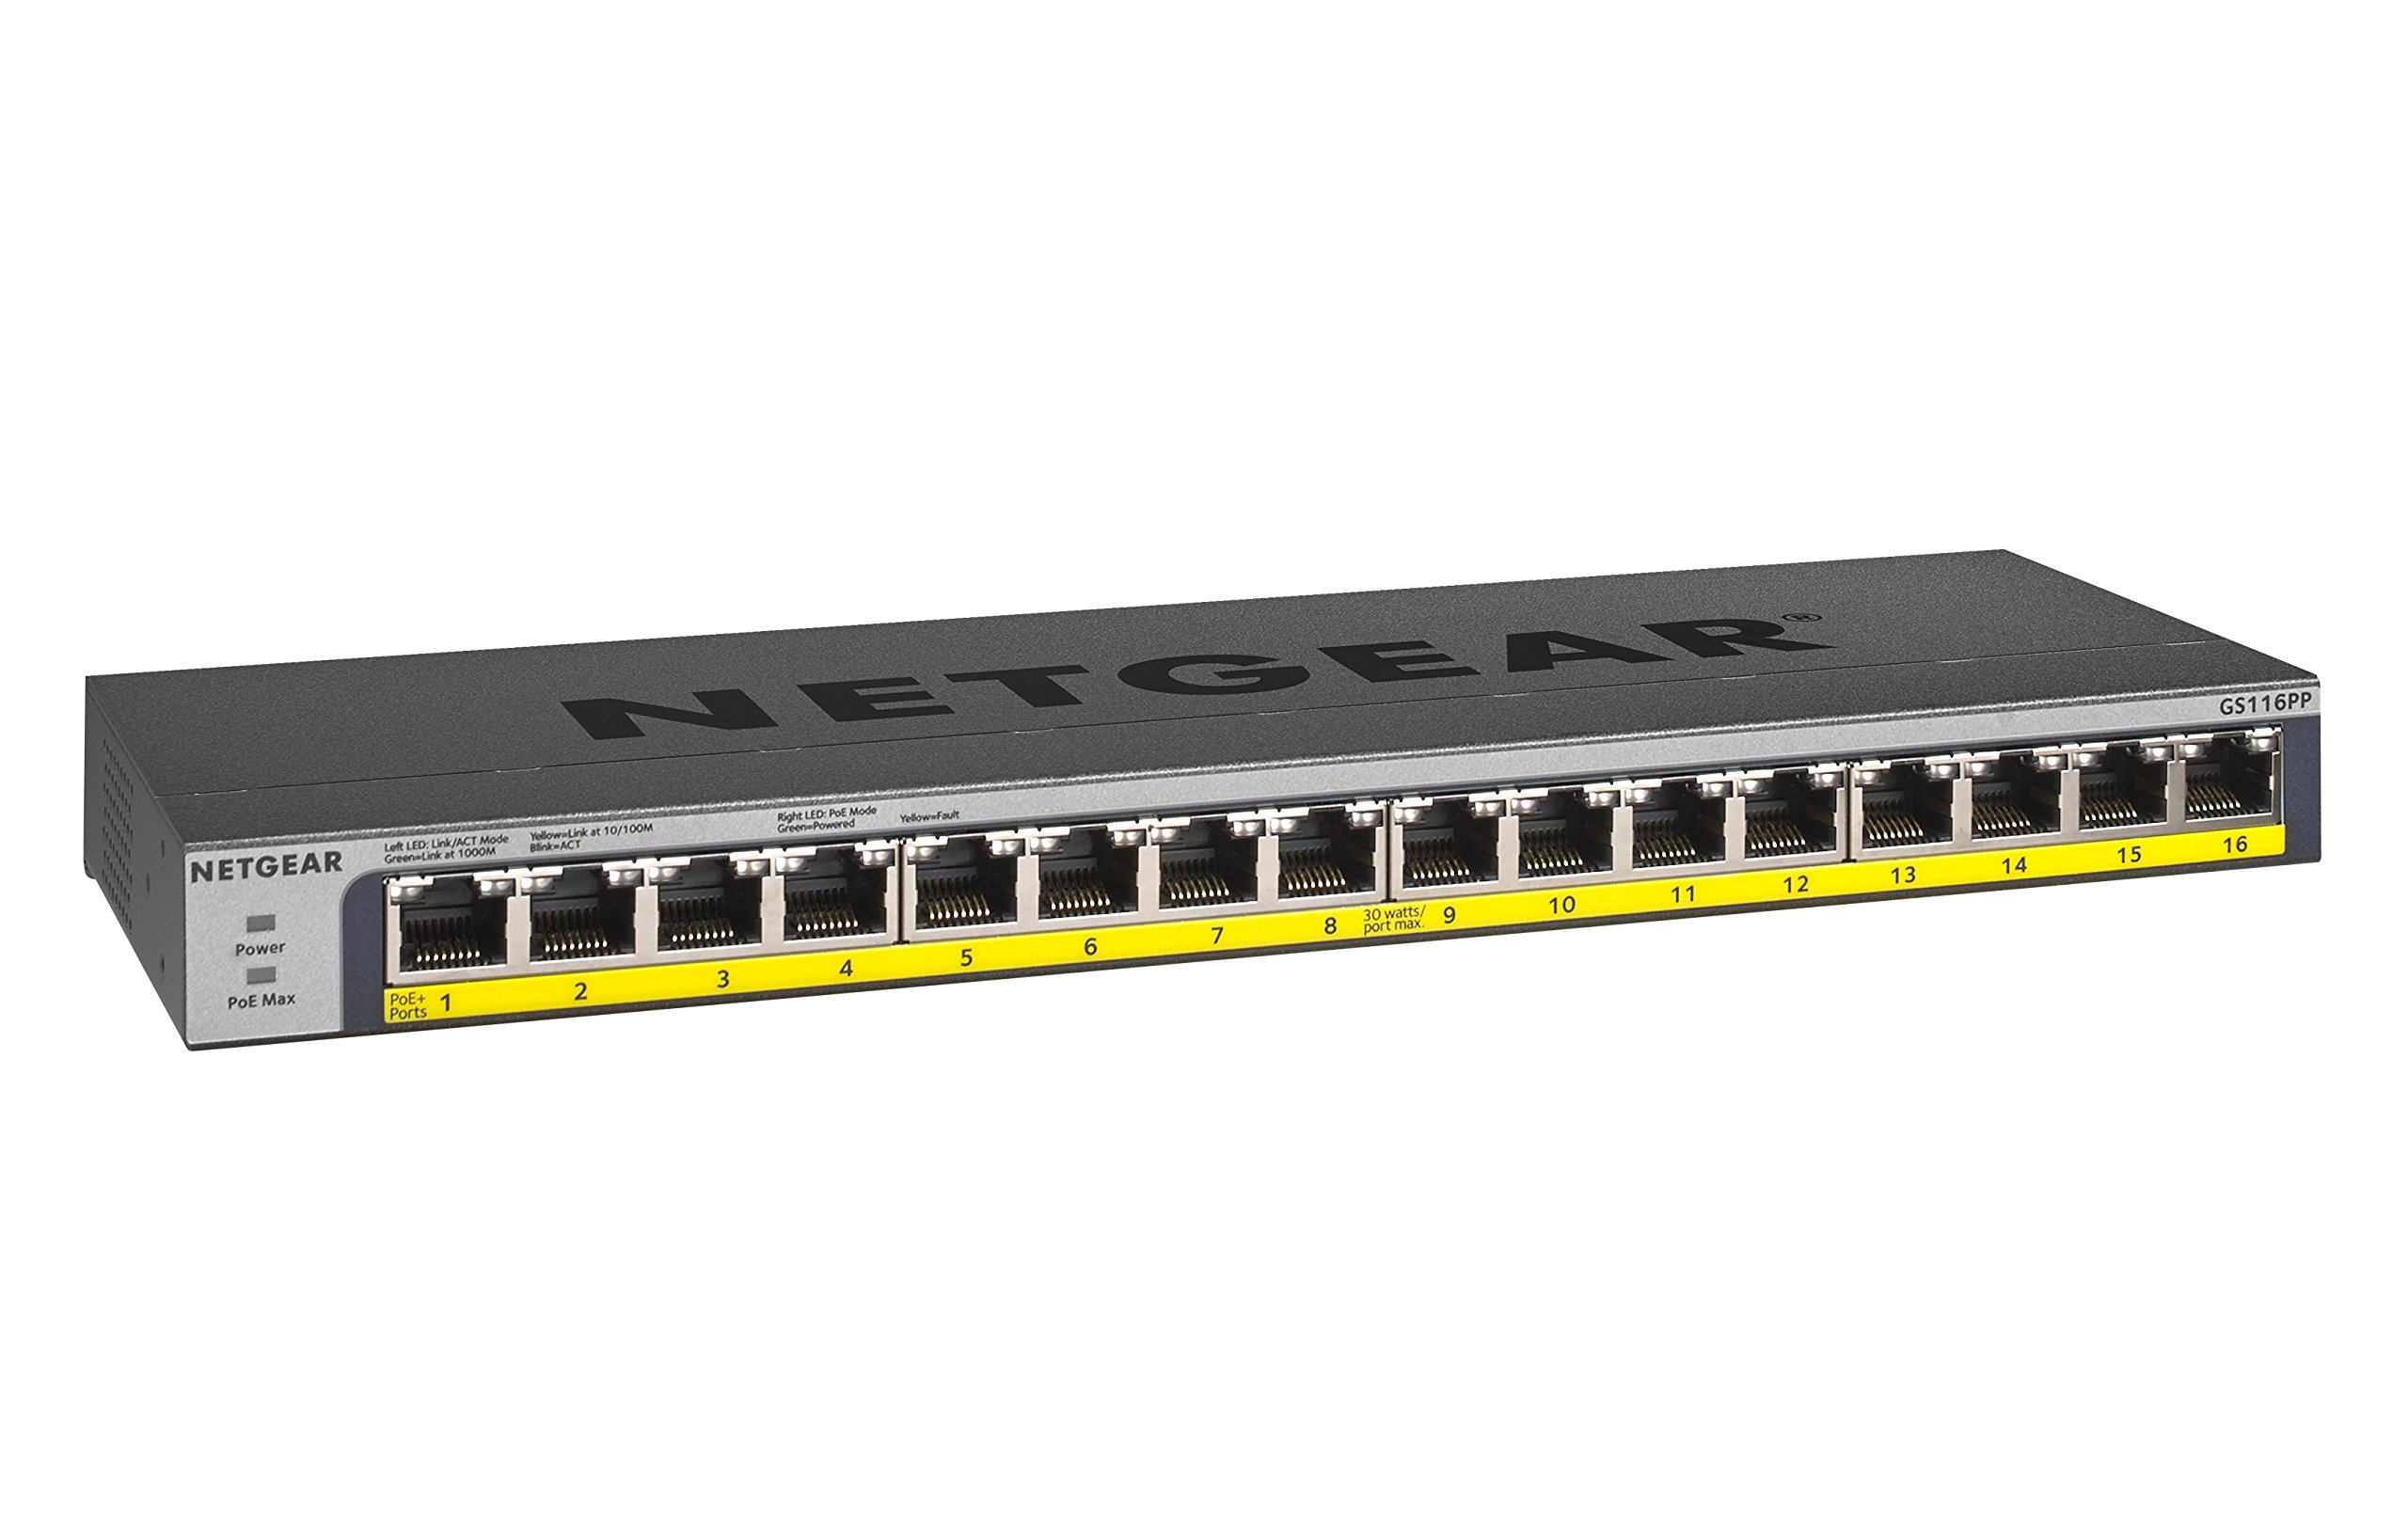 NETGEAR 16-Port Gigabit Ethernet Unmanaged PoE Switch (GS116PP) - with 16 x PoE+ @ 183W, Desktop/Rackmount, and ProSAFE Limited Lifetime Protection by NETGEAR